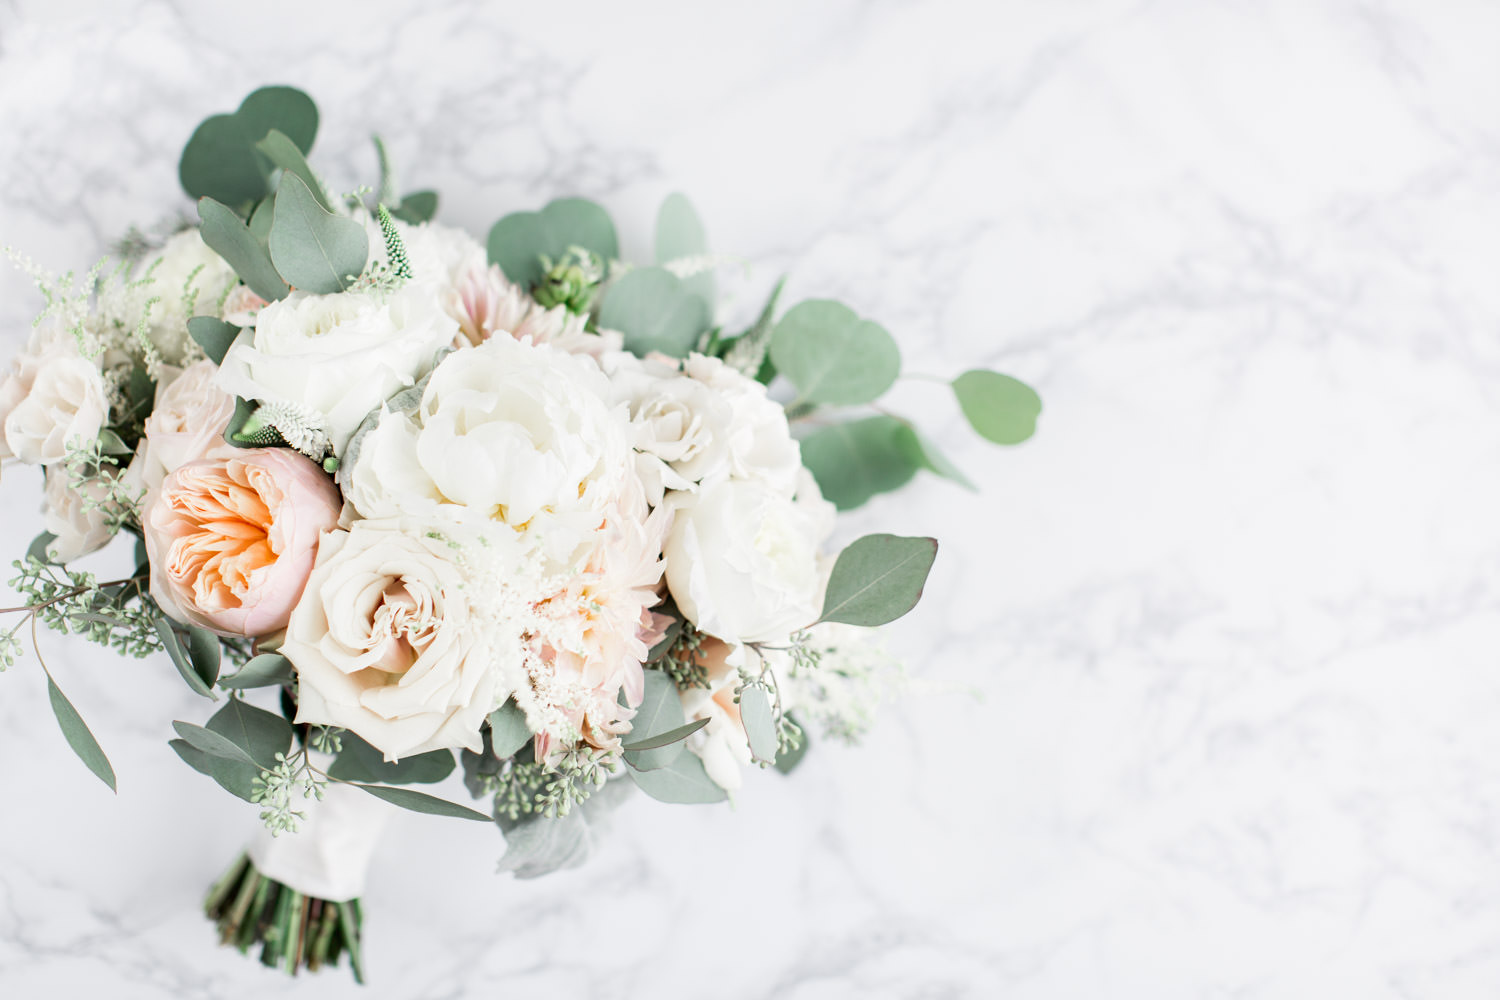 Organic Elements large bridal bouquet with white pink and green, Intimate San Diego Catamaran Resort Wedding on Mission Bay by Cavin Elizabeth